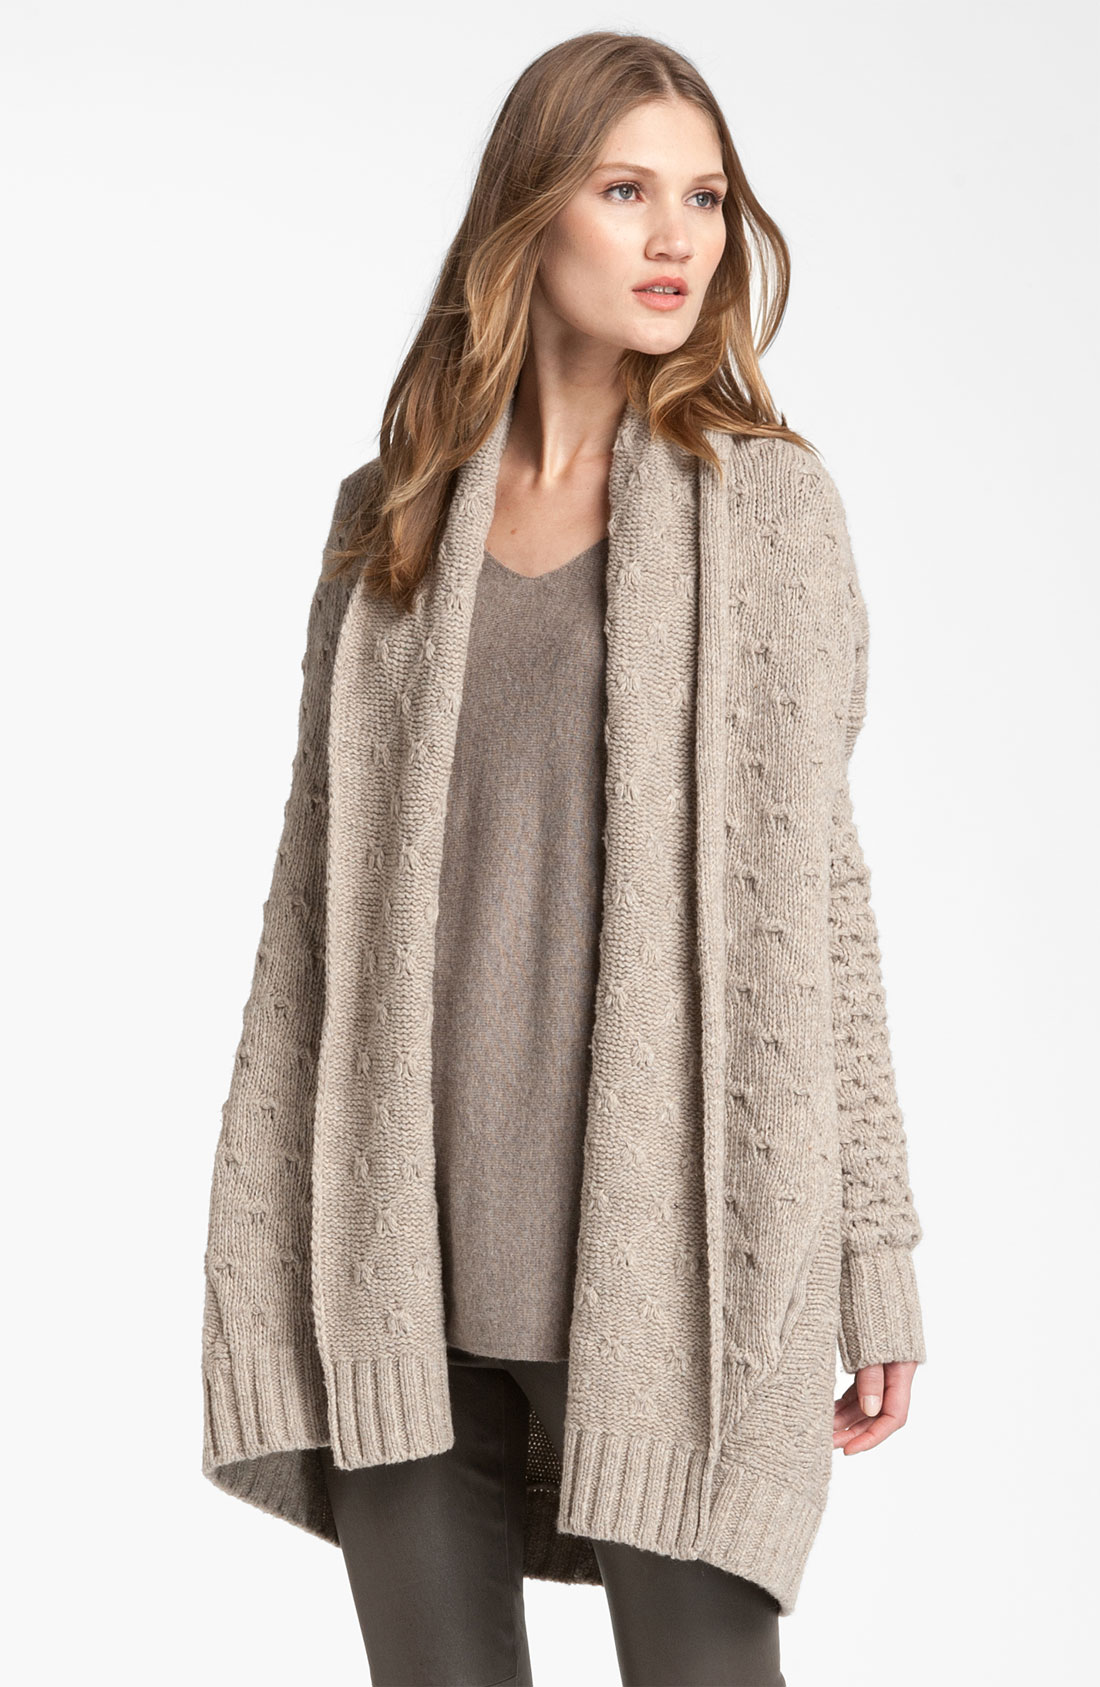 Vince Mixed Knit Oversized Cardigan in Beige (oatmeal) Lyst